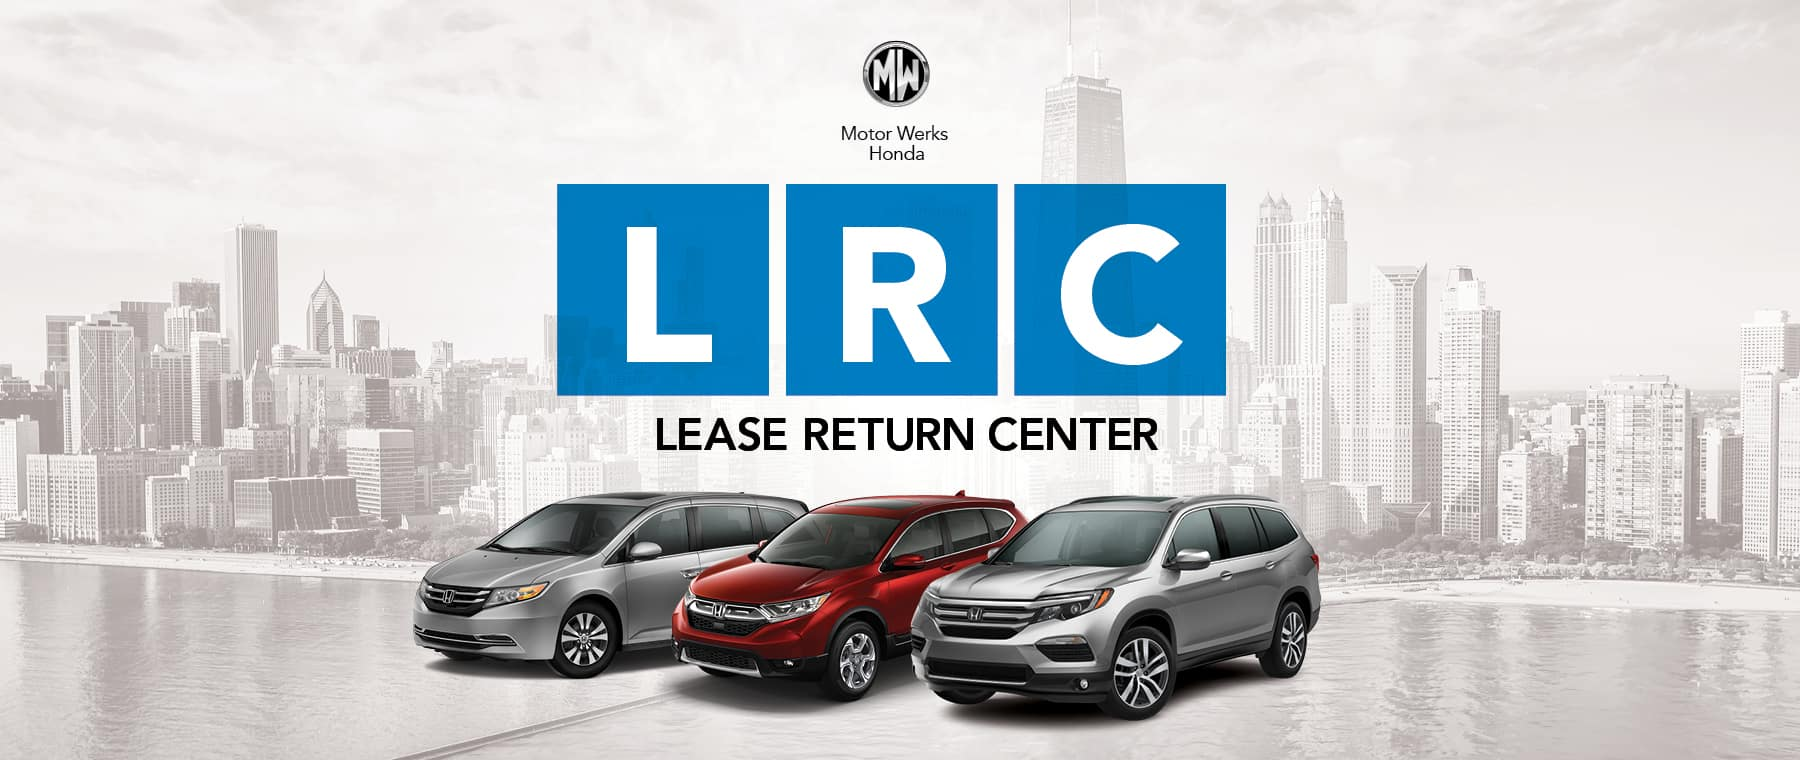 Lease Return Center